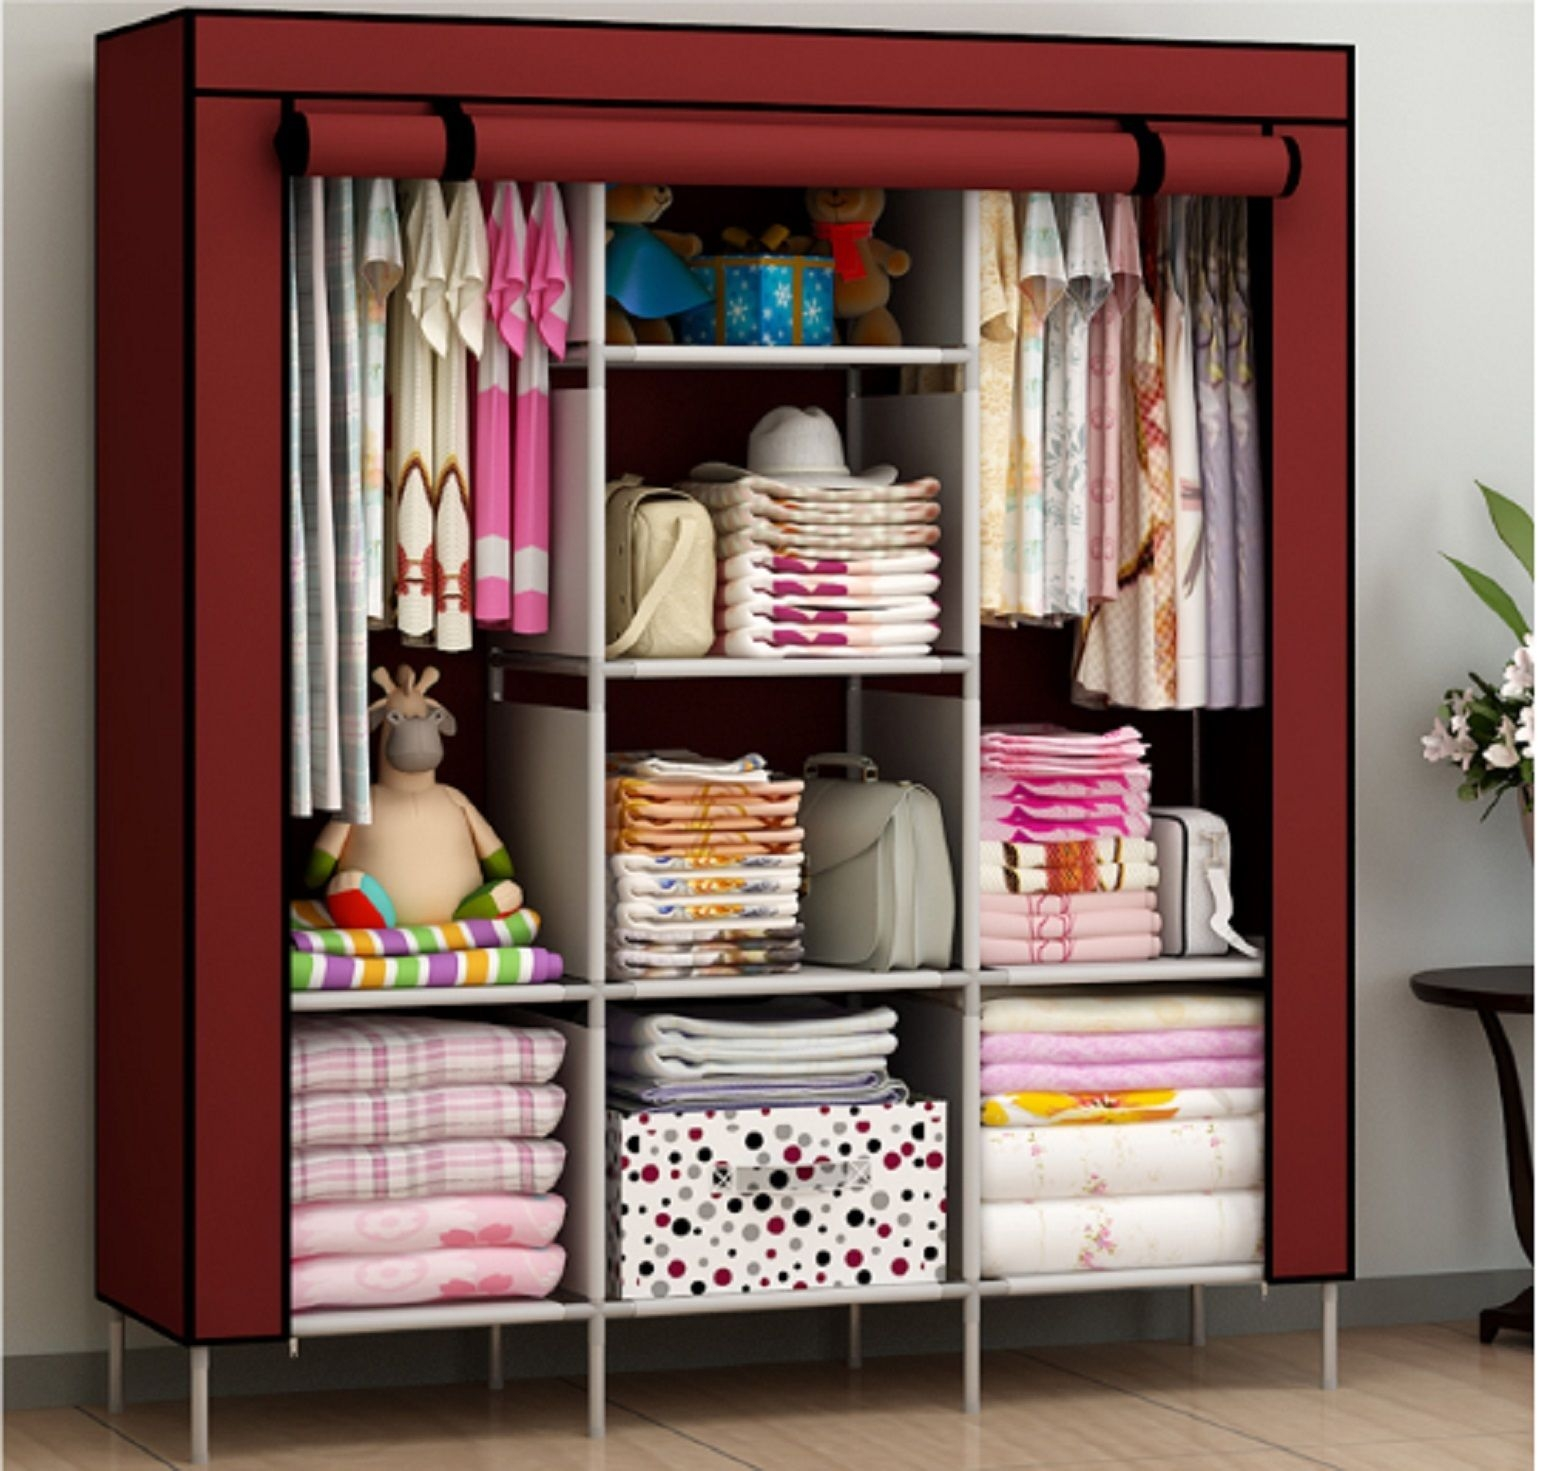 New Portable Bedroom Furniture Clothes Wardrobe Closet Storage With Mobile Wardrobe Cabinets (Image 14 of 25)